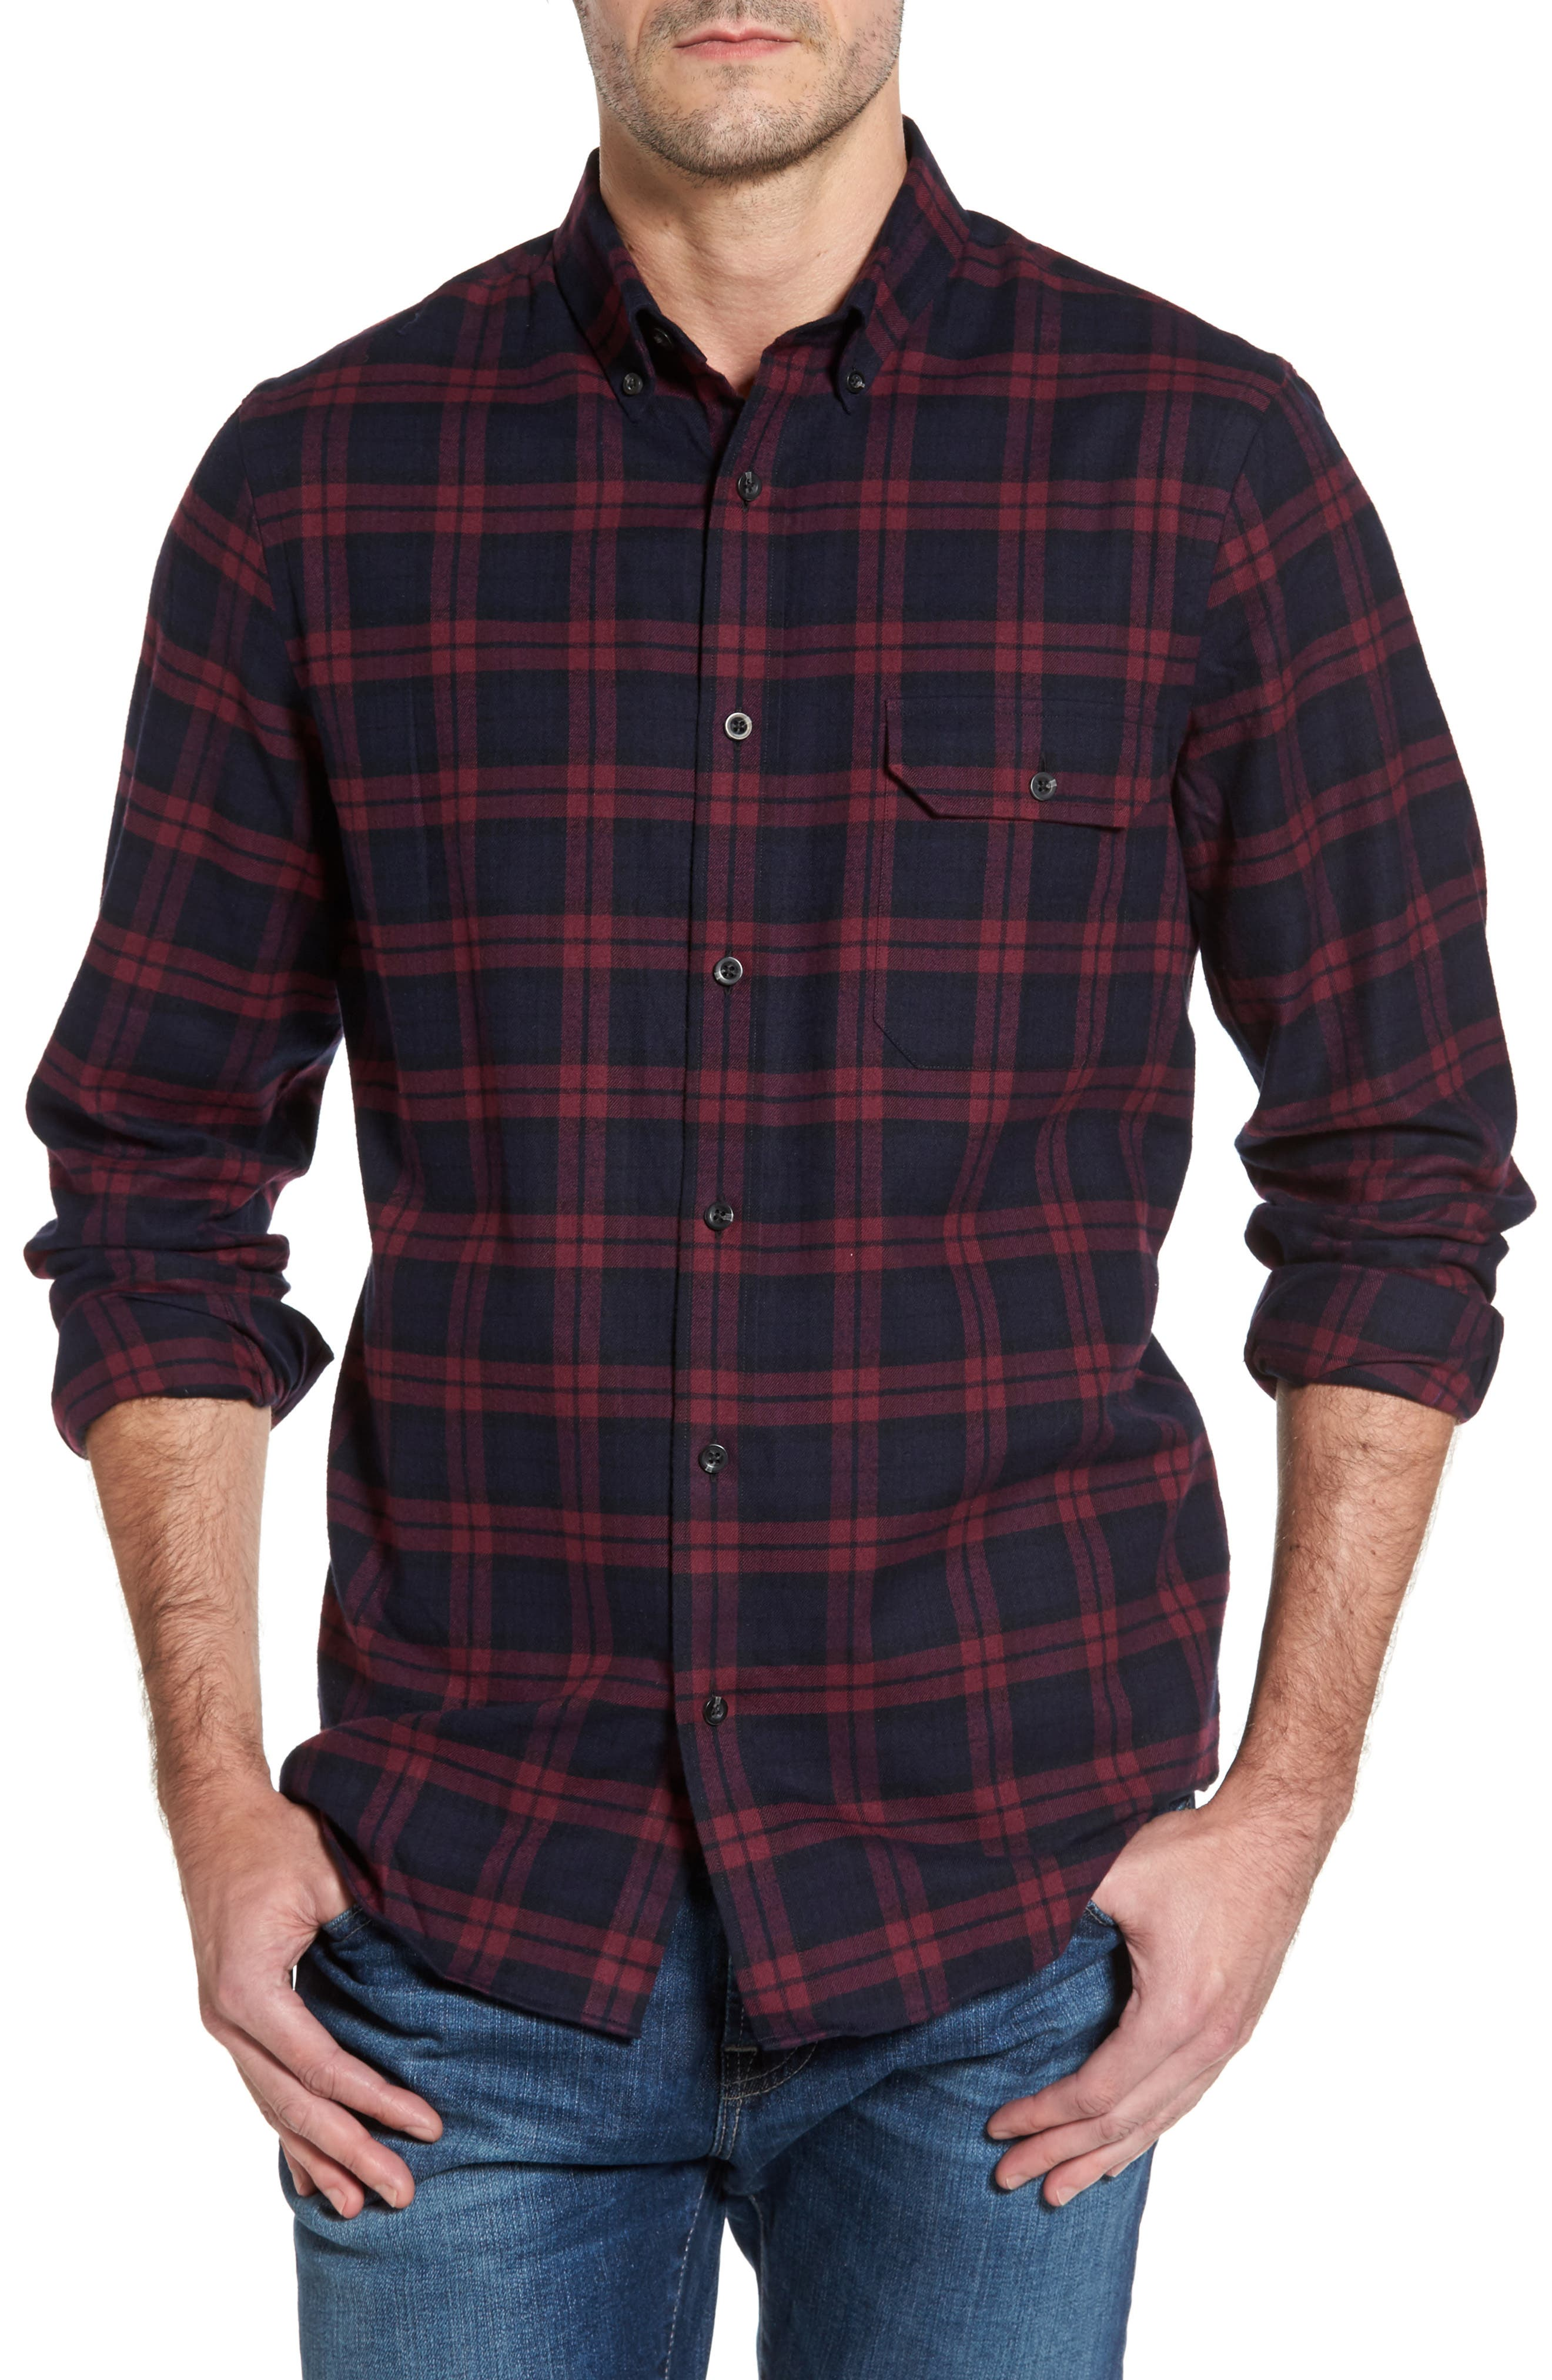 Regular Fit Plaid Sport Shirt,                             Main thumbnail 1, color,                             Red Chili Plaid Flannel